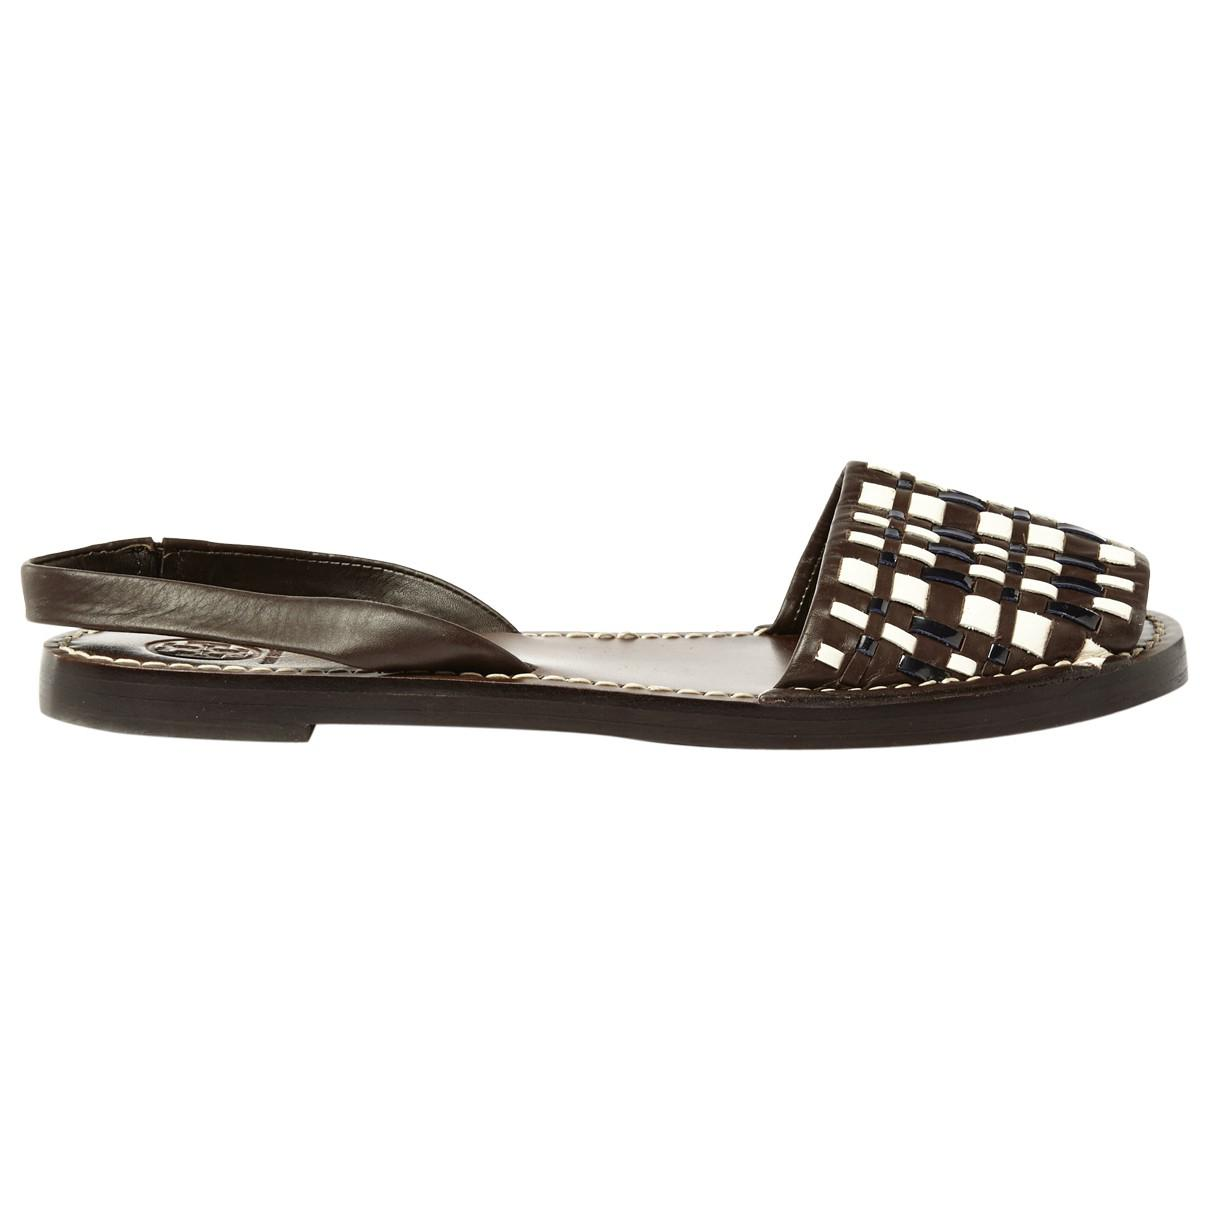 e34bf80380455 Lyst - Tory Burch Brown Leather Sandals in Brown